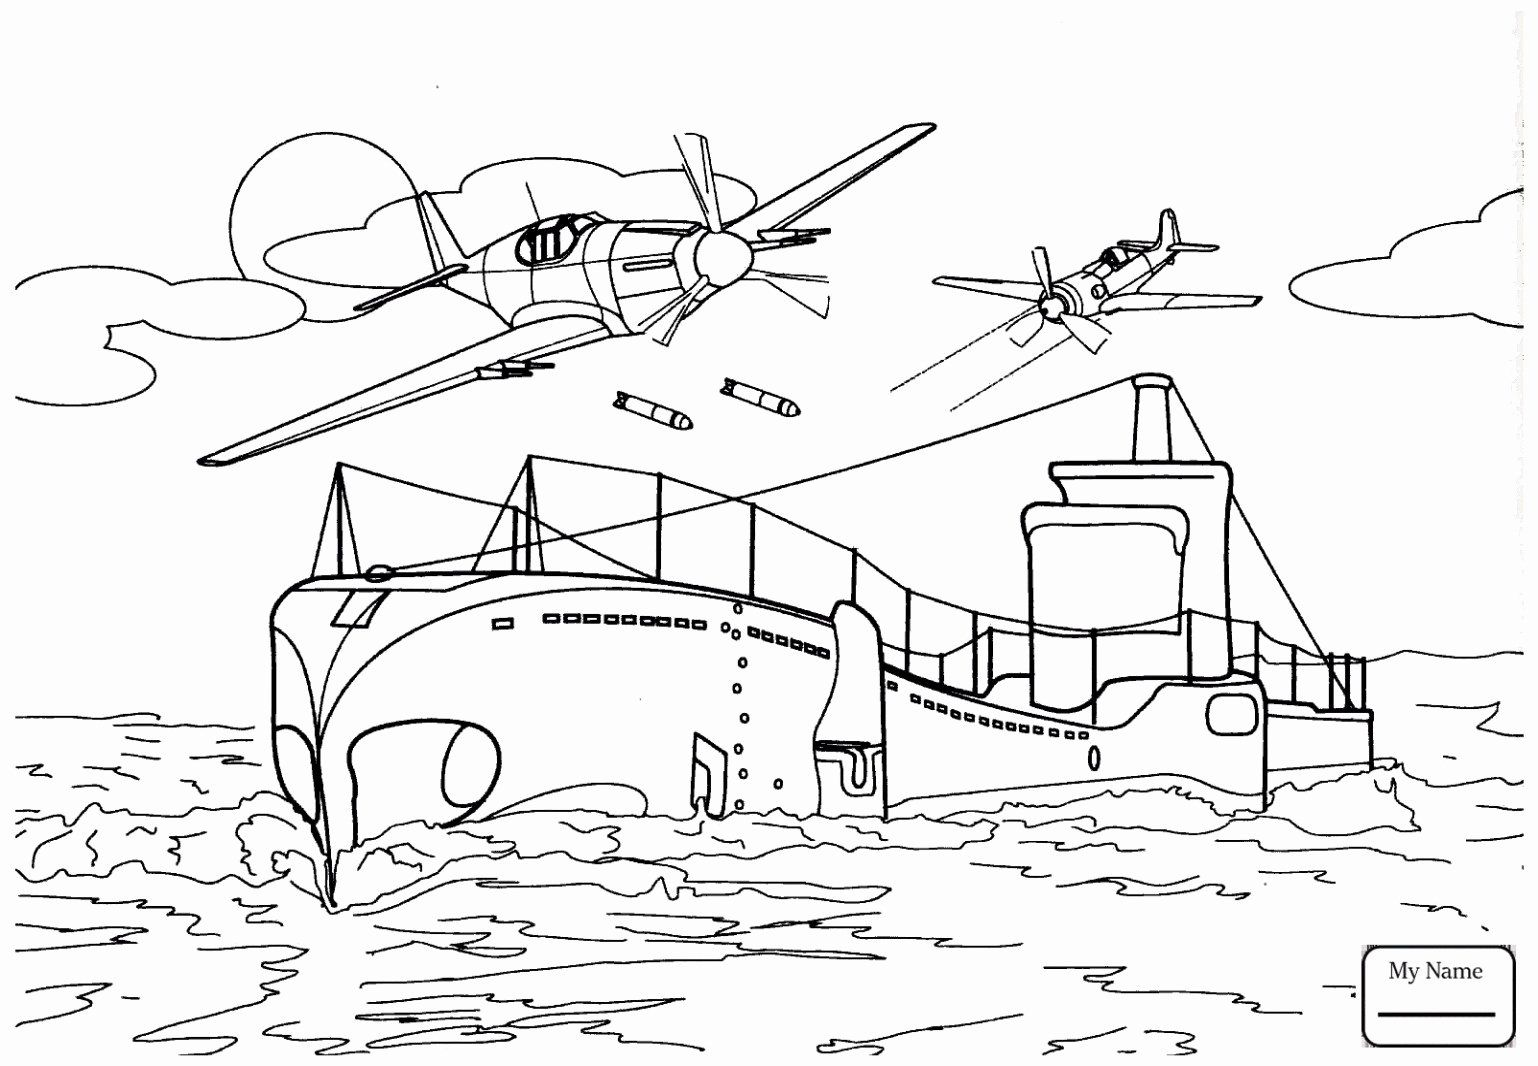 Coloring Pages Military Vehicles Best Of Ships Coloring Pages Lego Coloring Pages Bear Coloring Pages Flag Coloring Pages